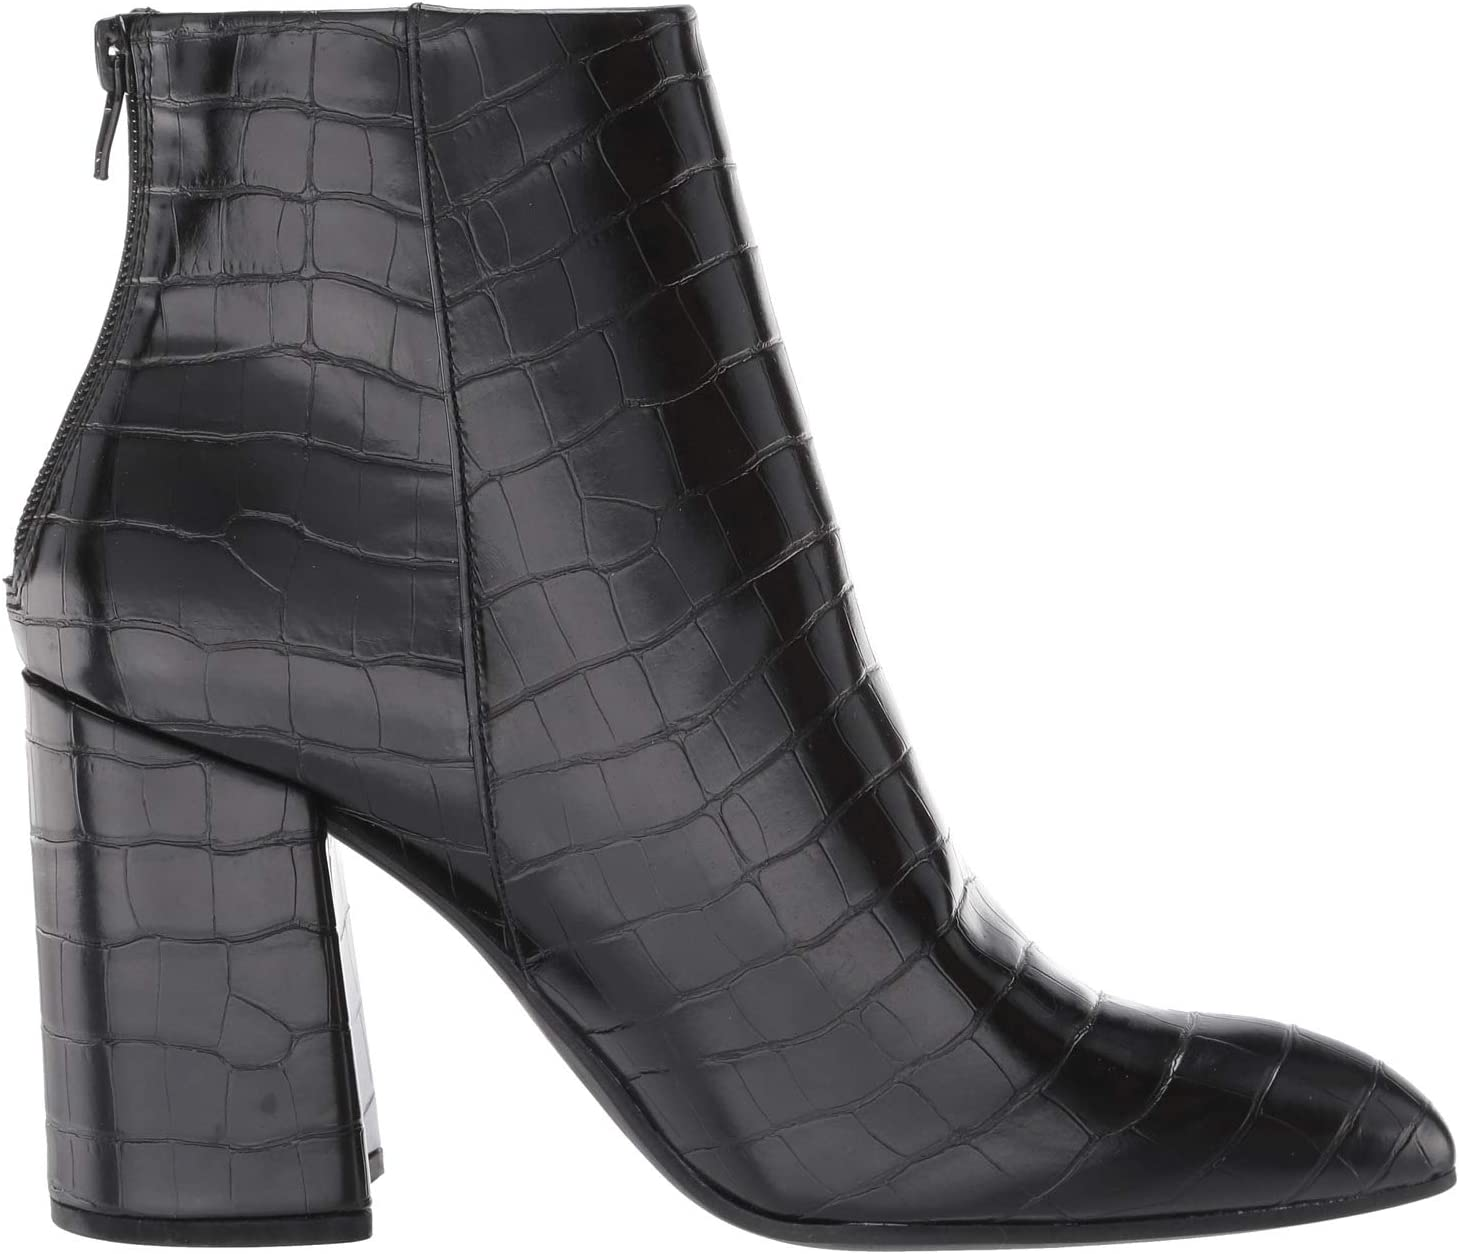 Steve Madden Tolerate Bootie | Women's shoes | 2020 Newest